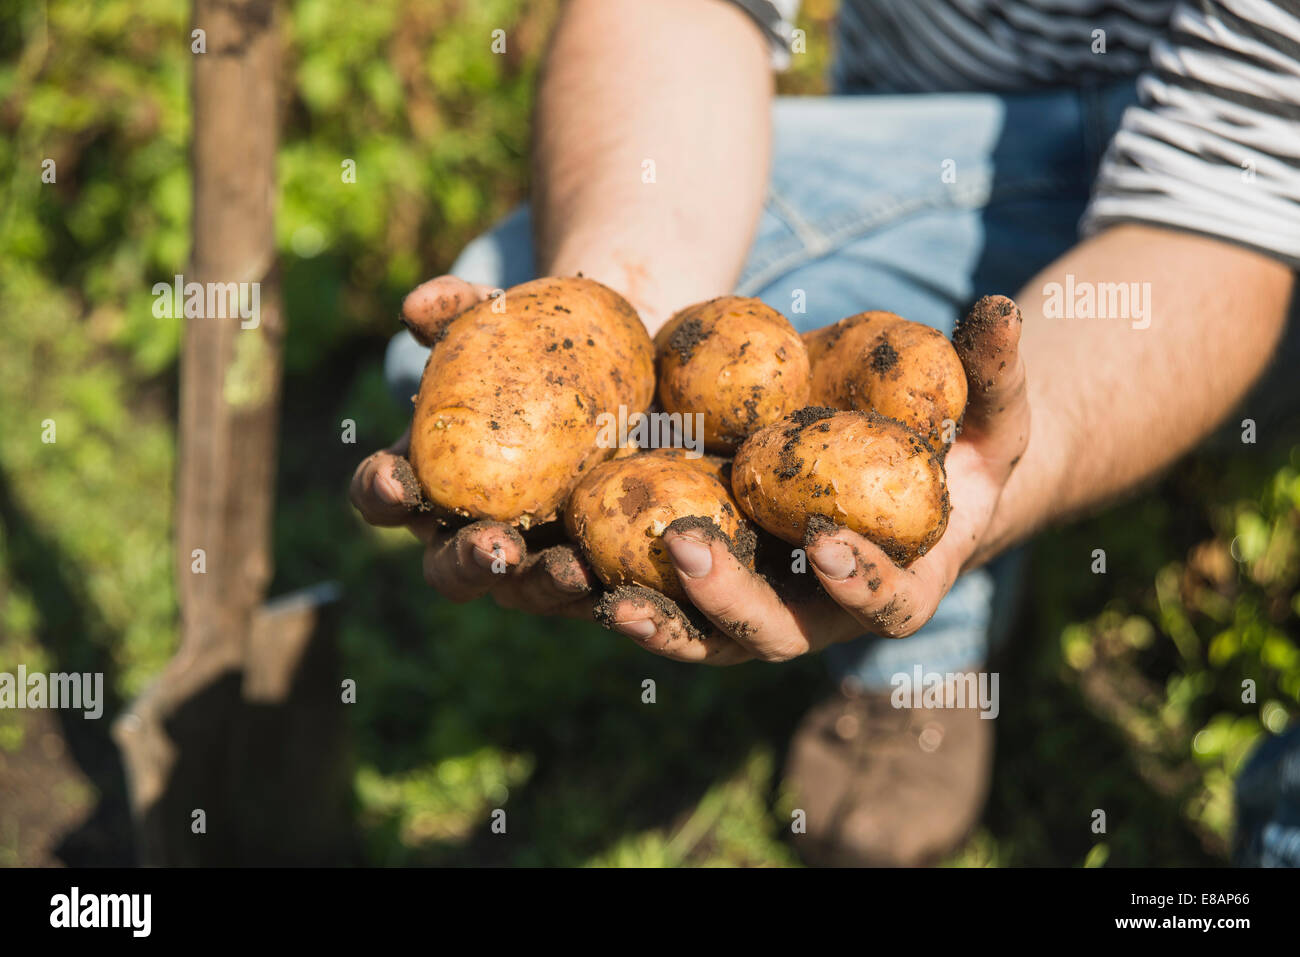 Gardener holding freshly dug potatoes Stock Photo